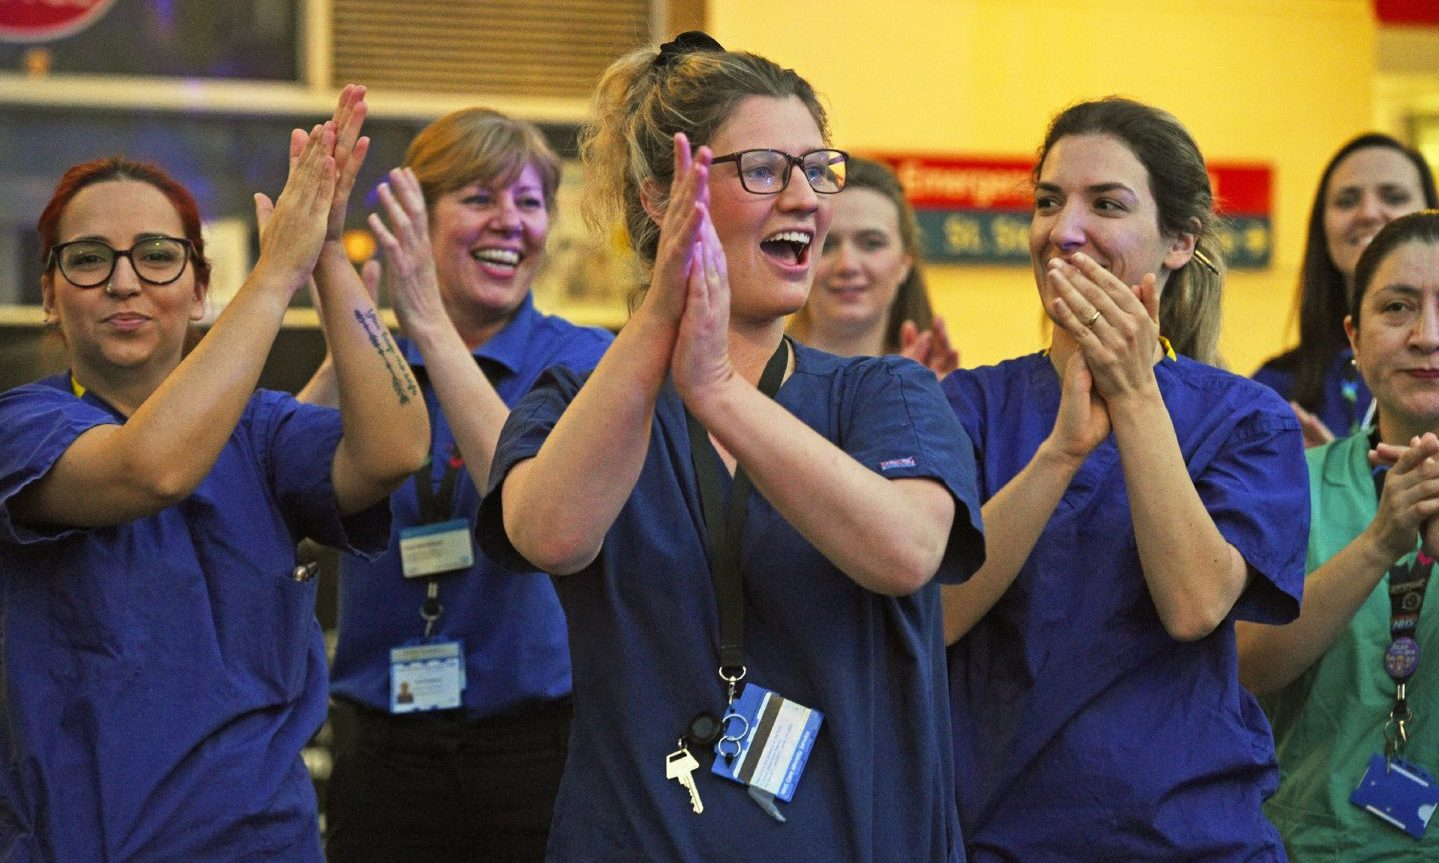 Hospital staff in London take part in the Clap for Carers initiative to applaud NHS workers fighting the coronavirus pandemic.